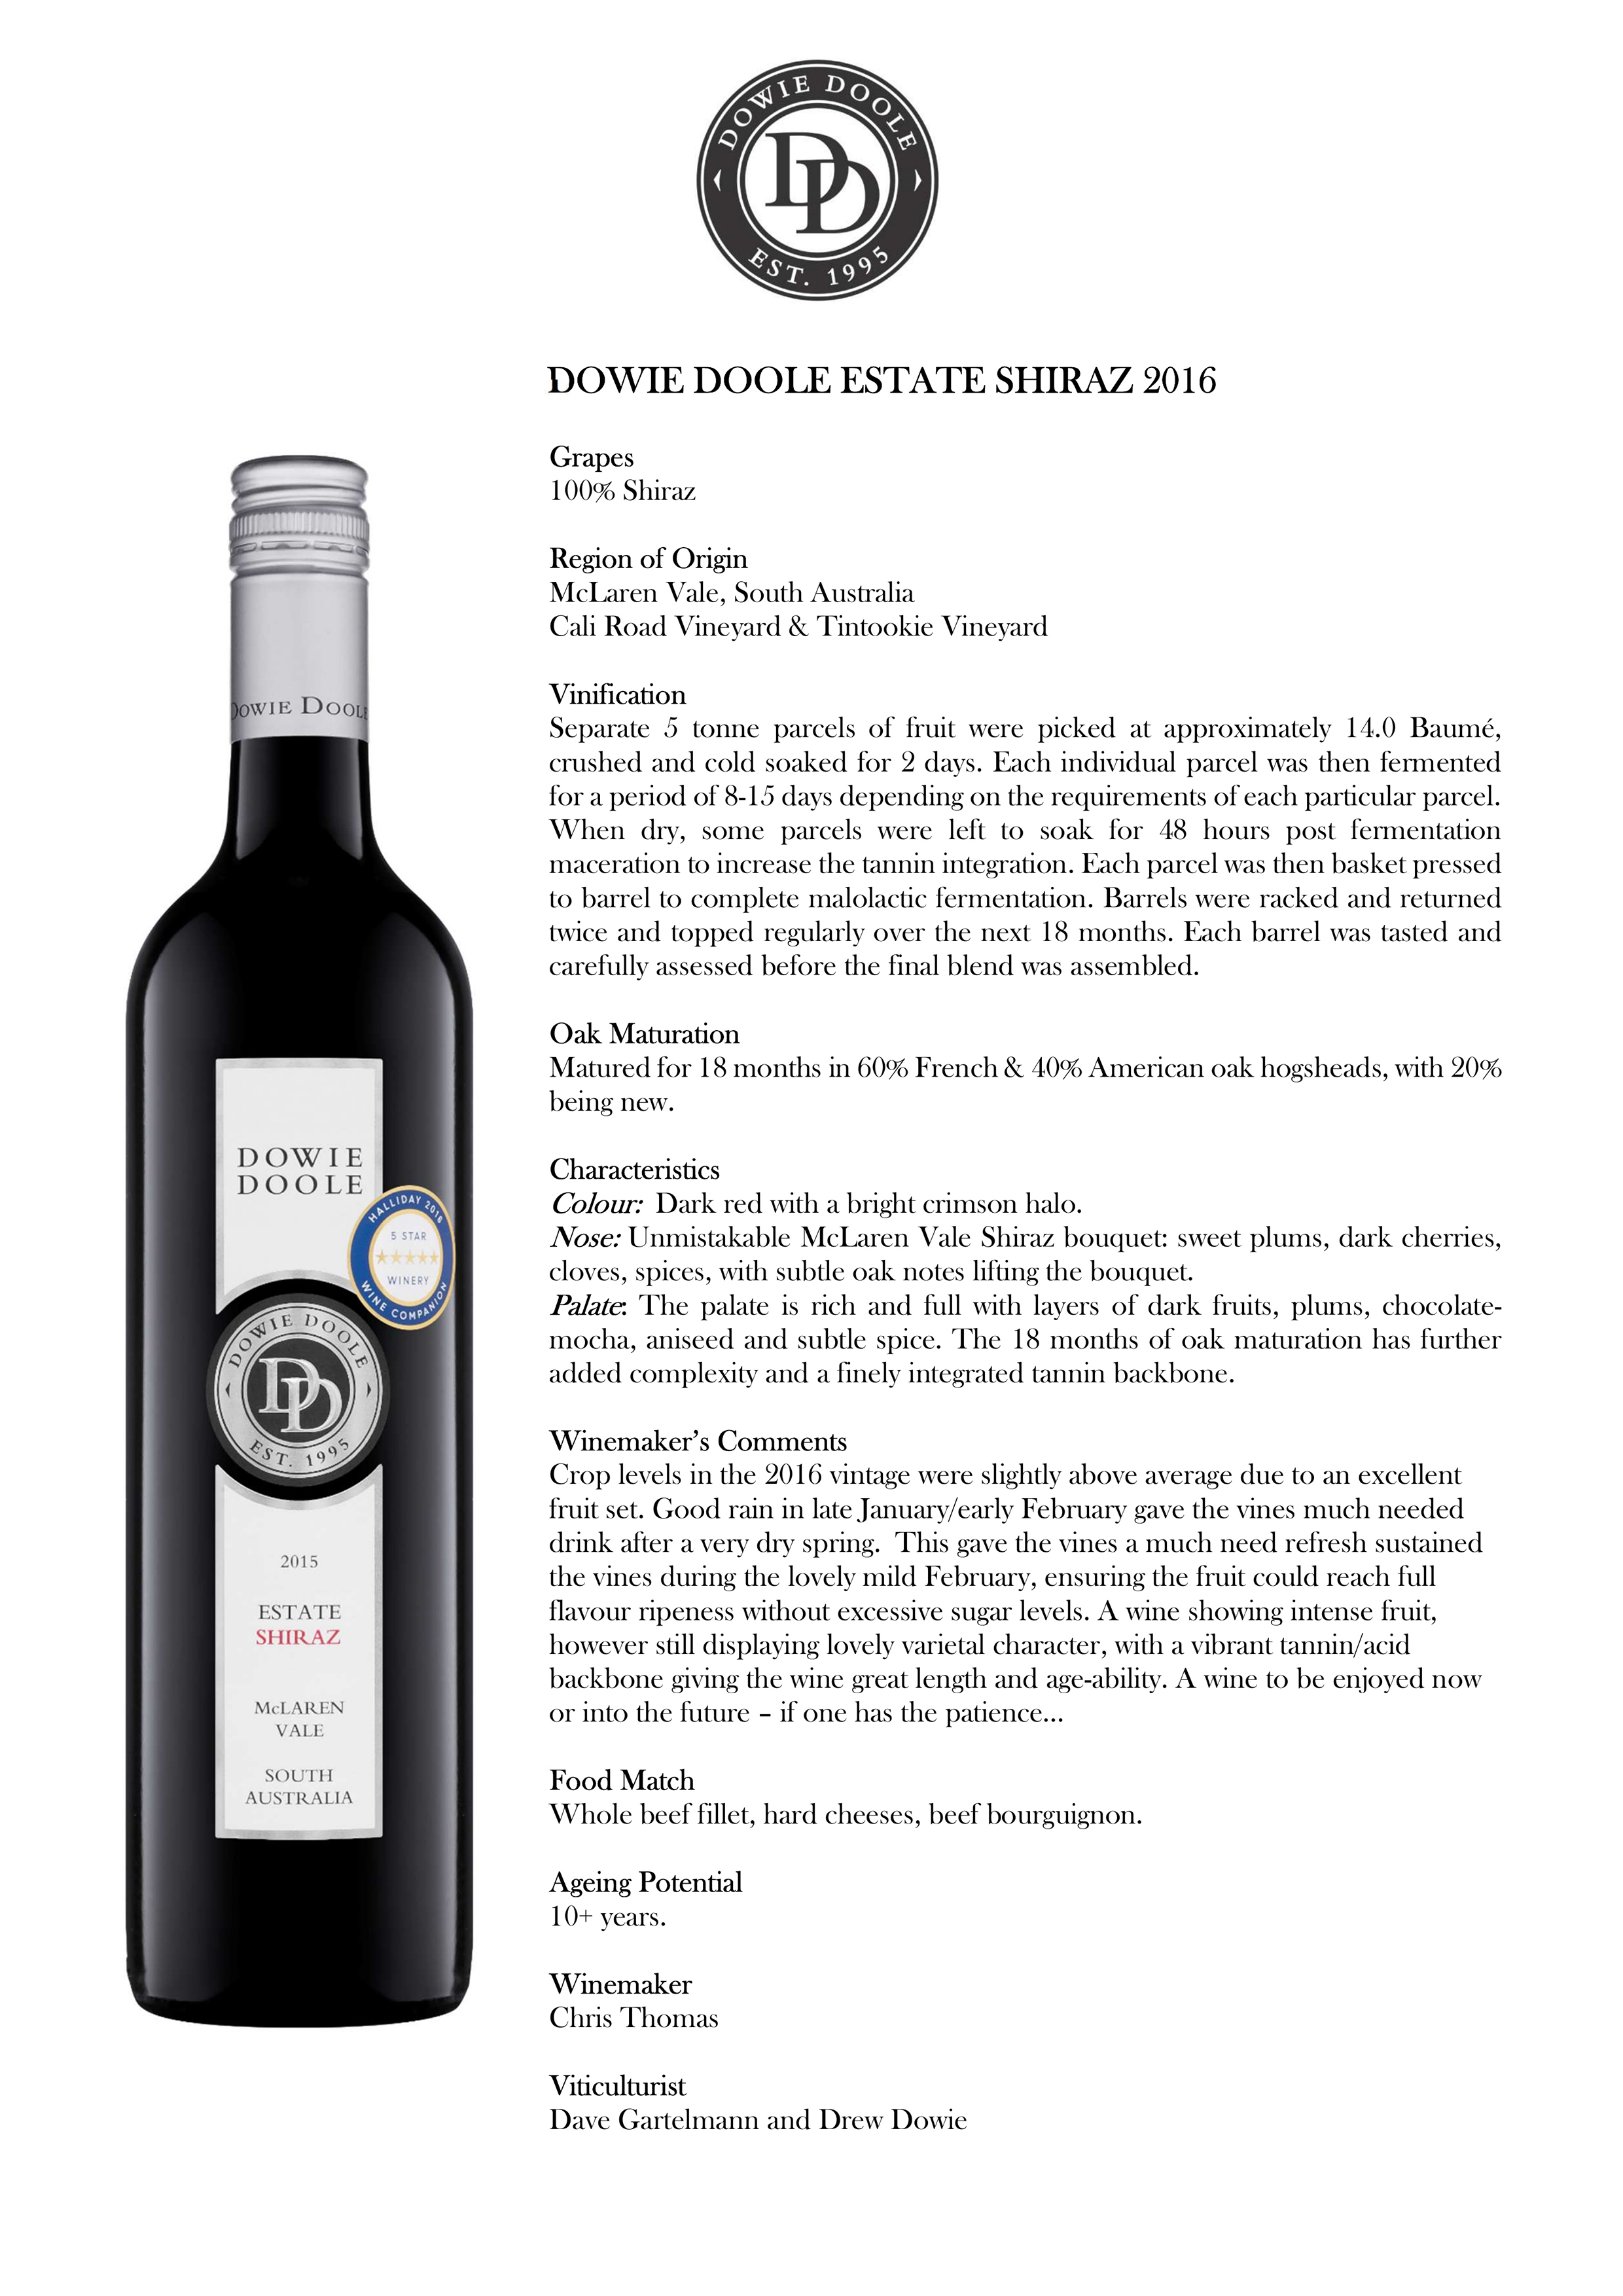 Dowie Doole Estate Shiraz Tasting Note